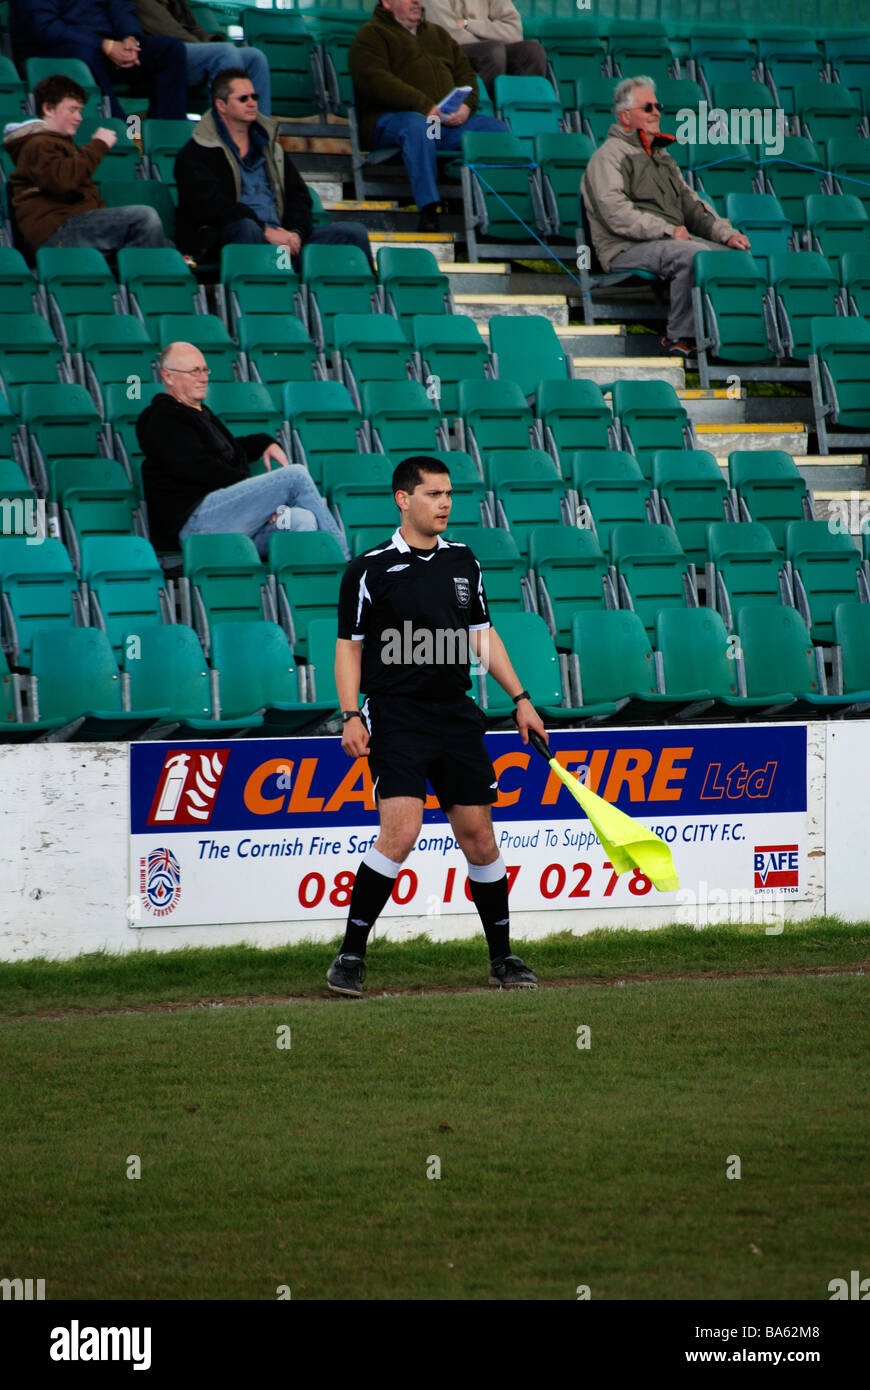 a referees assistant running the line at a football match - Stock Image